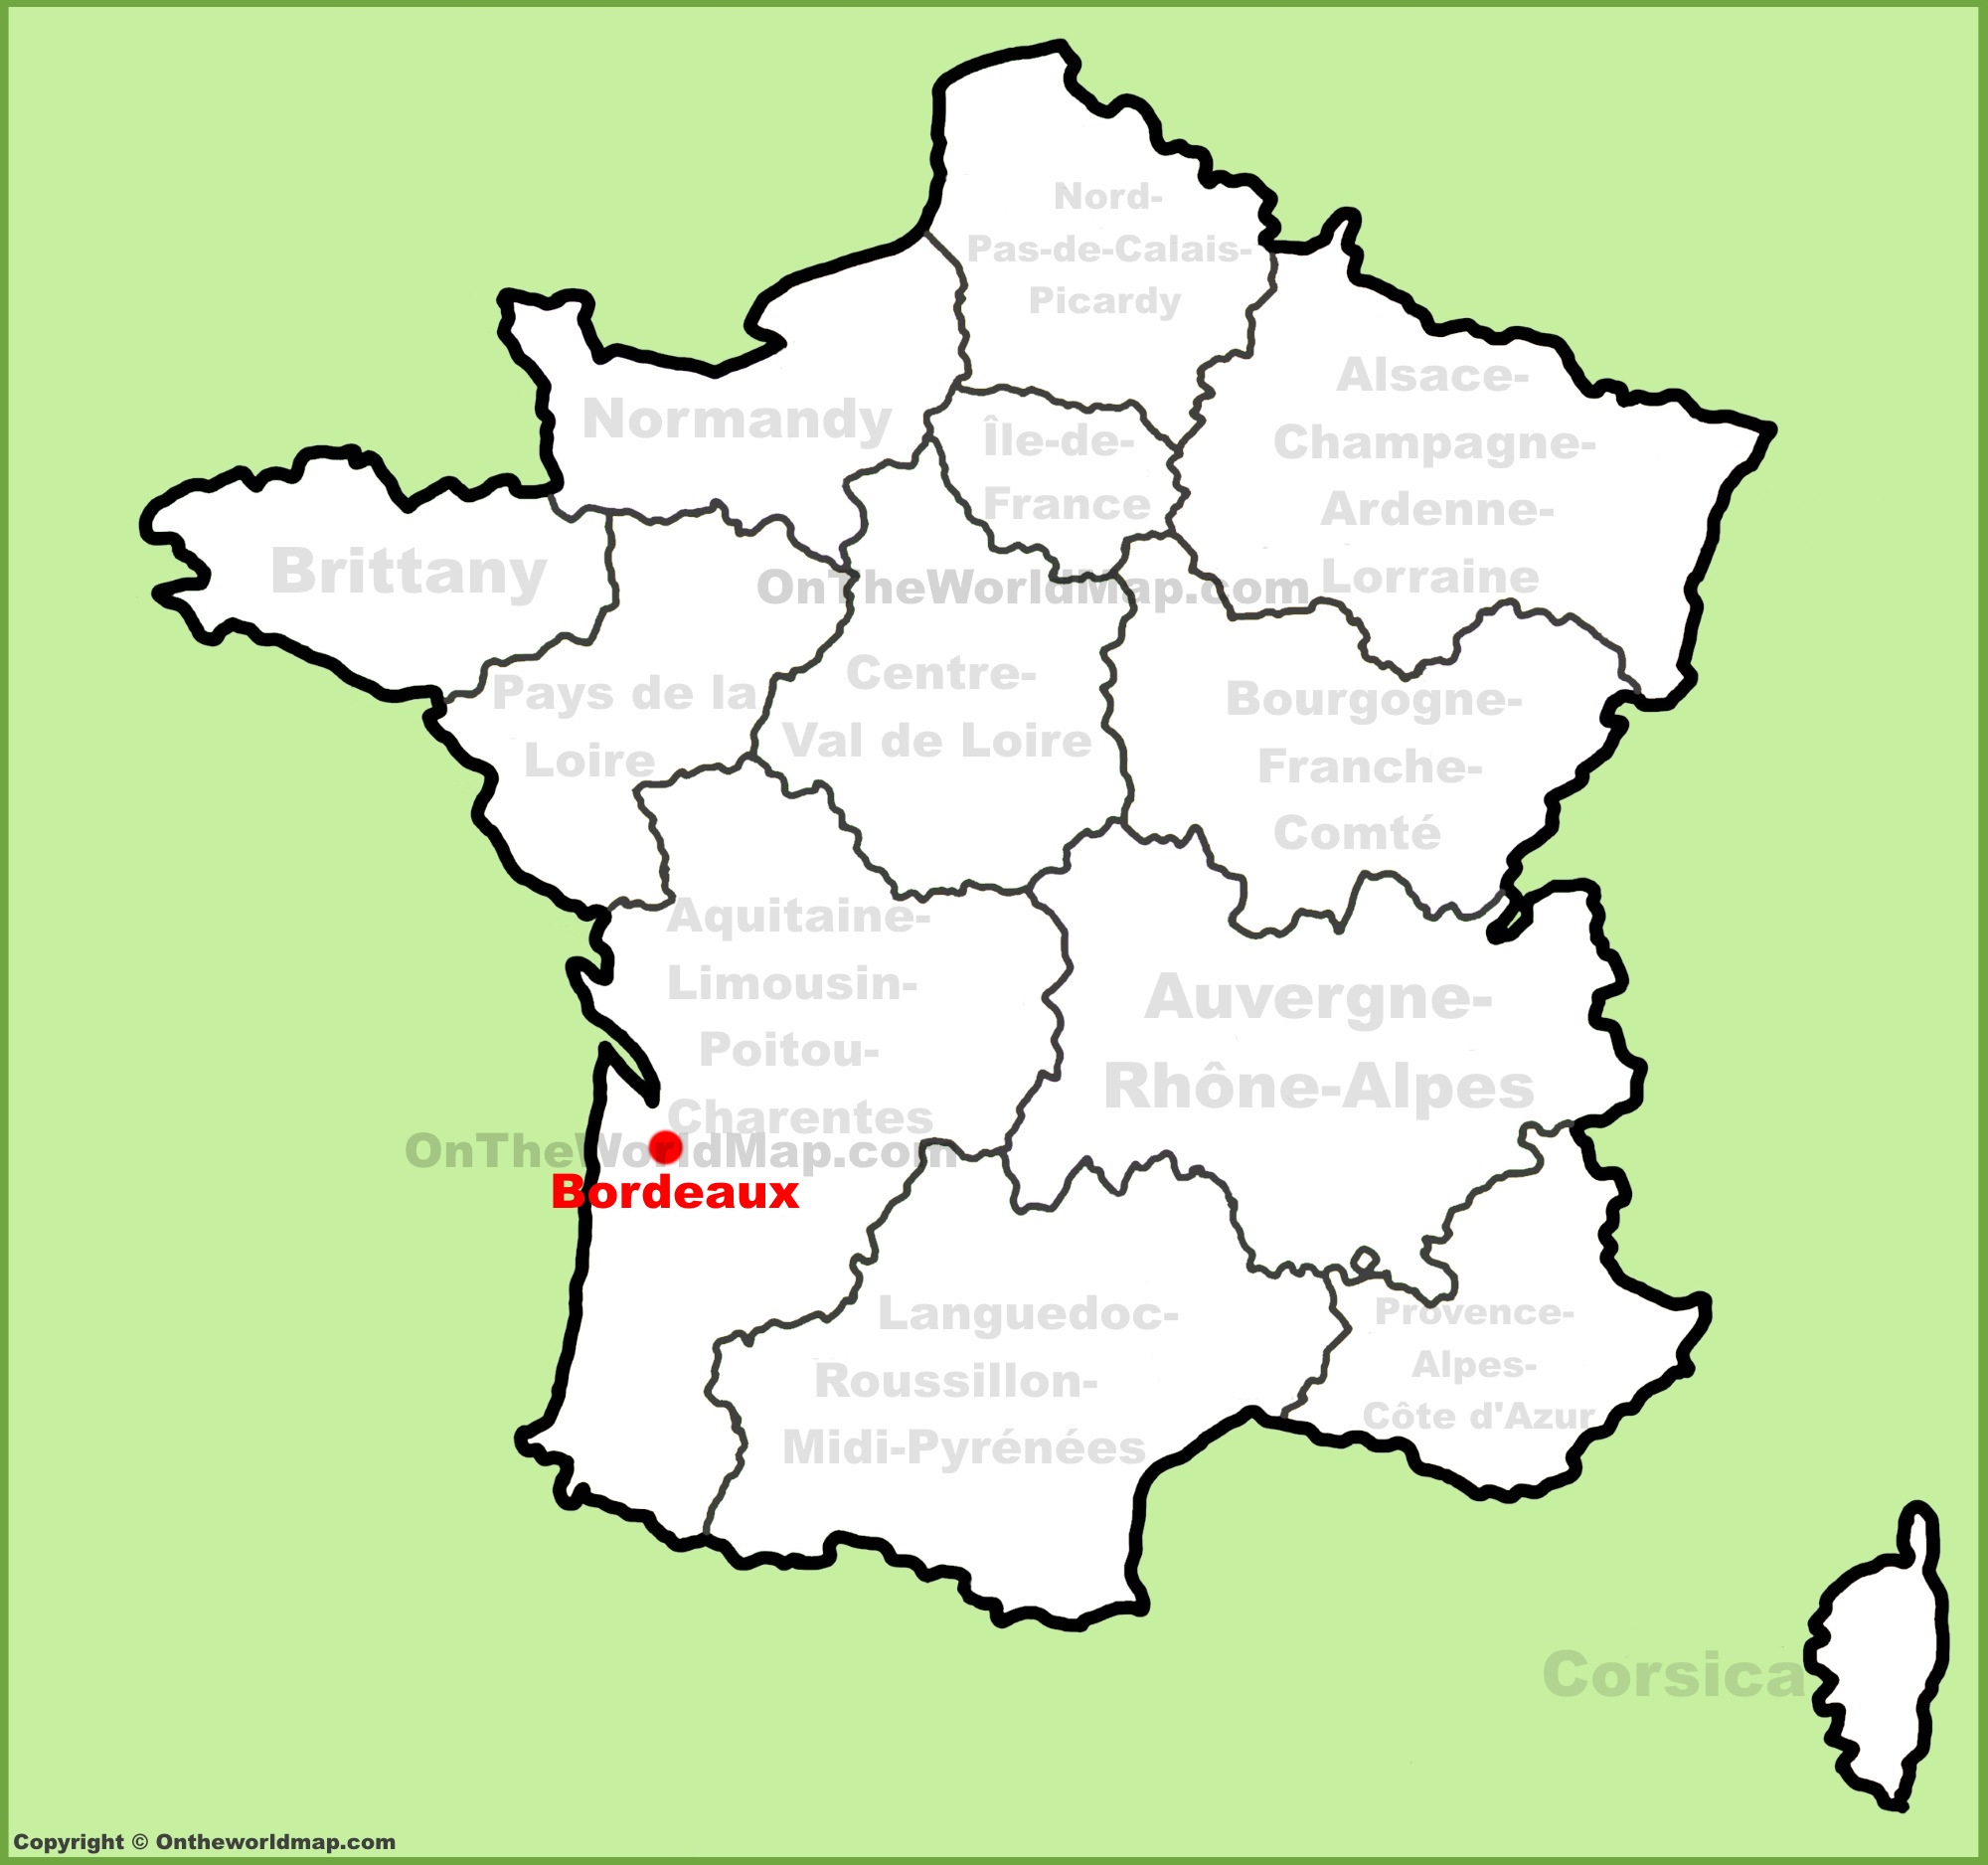 Bordeaux location on the france map for Bordeaux france